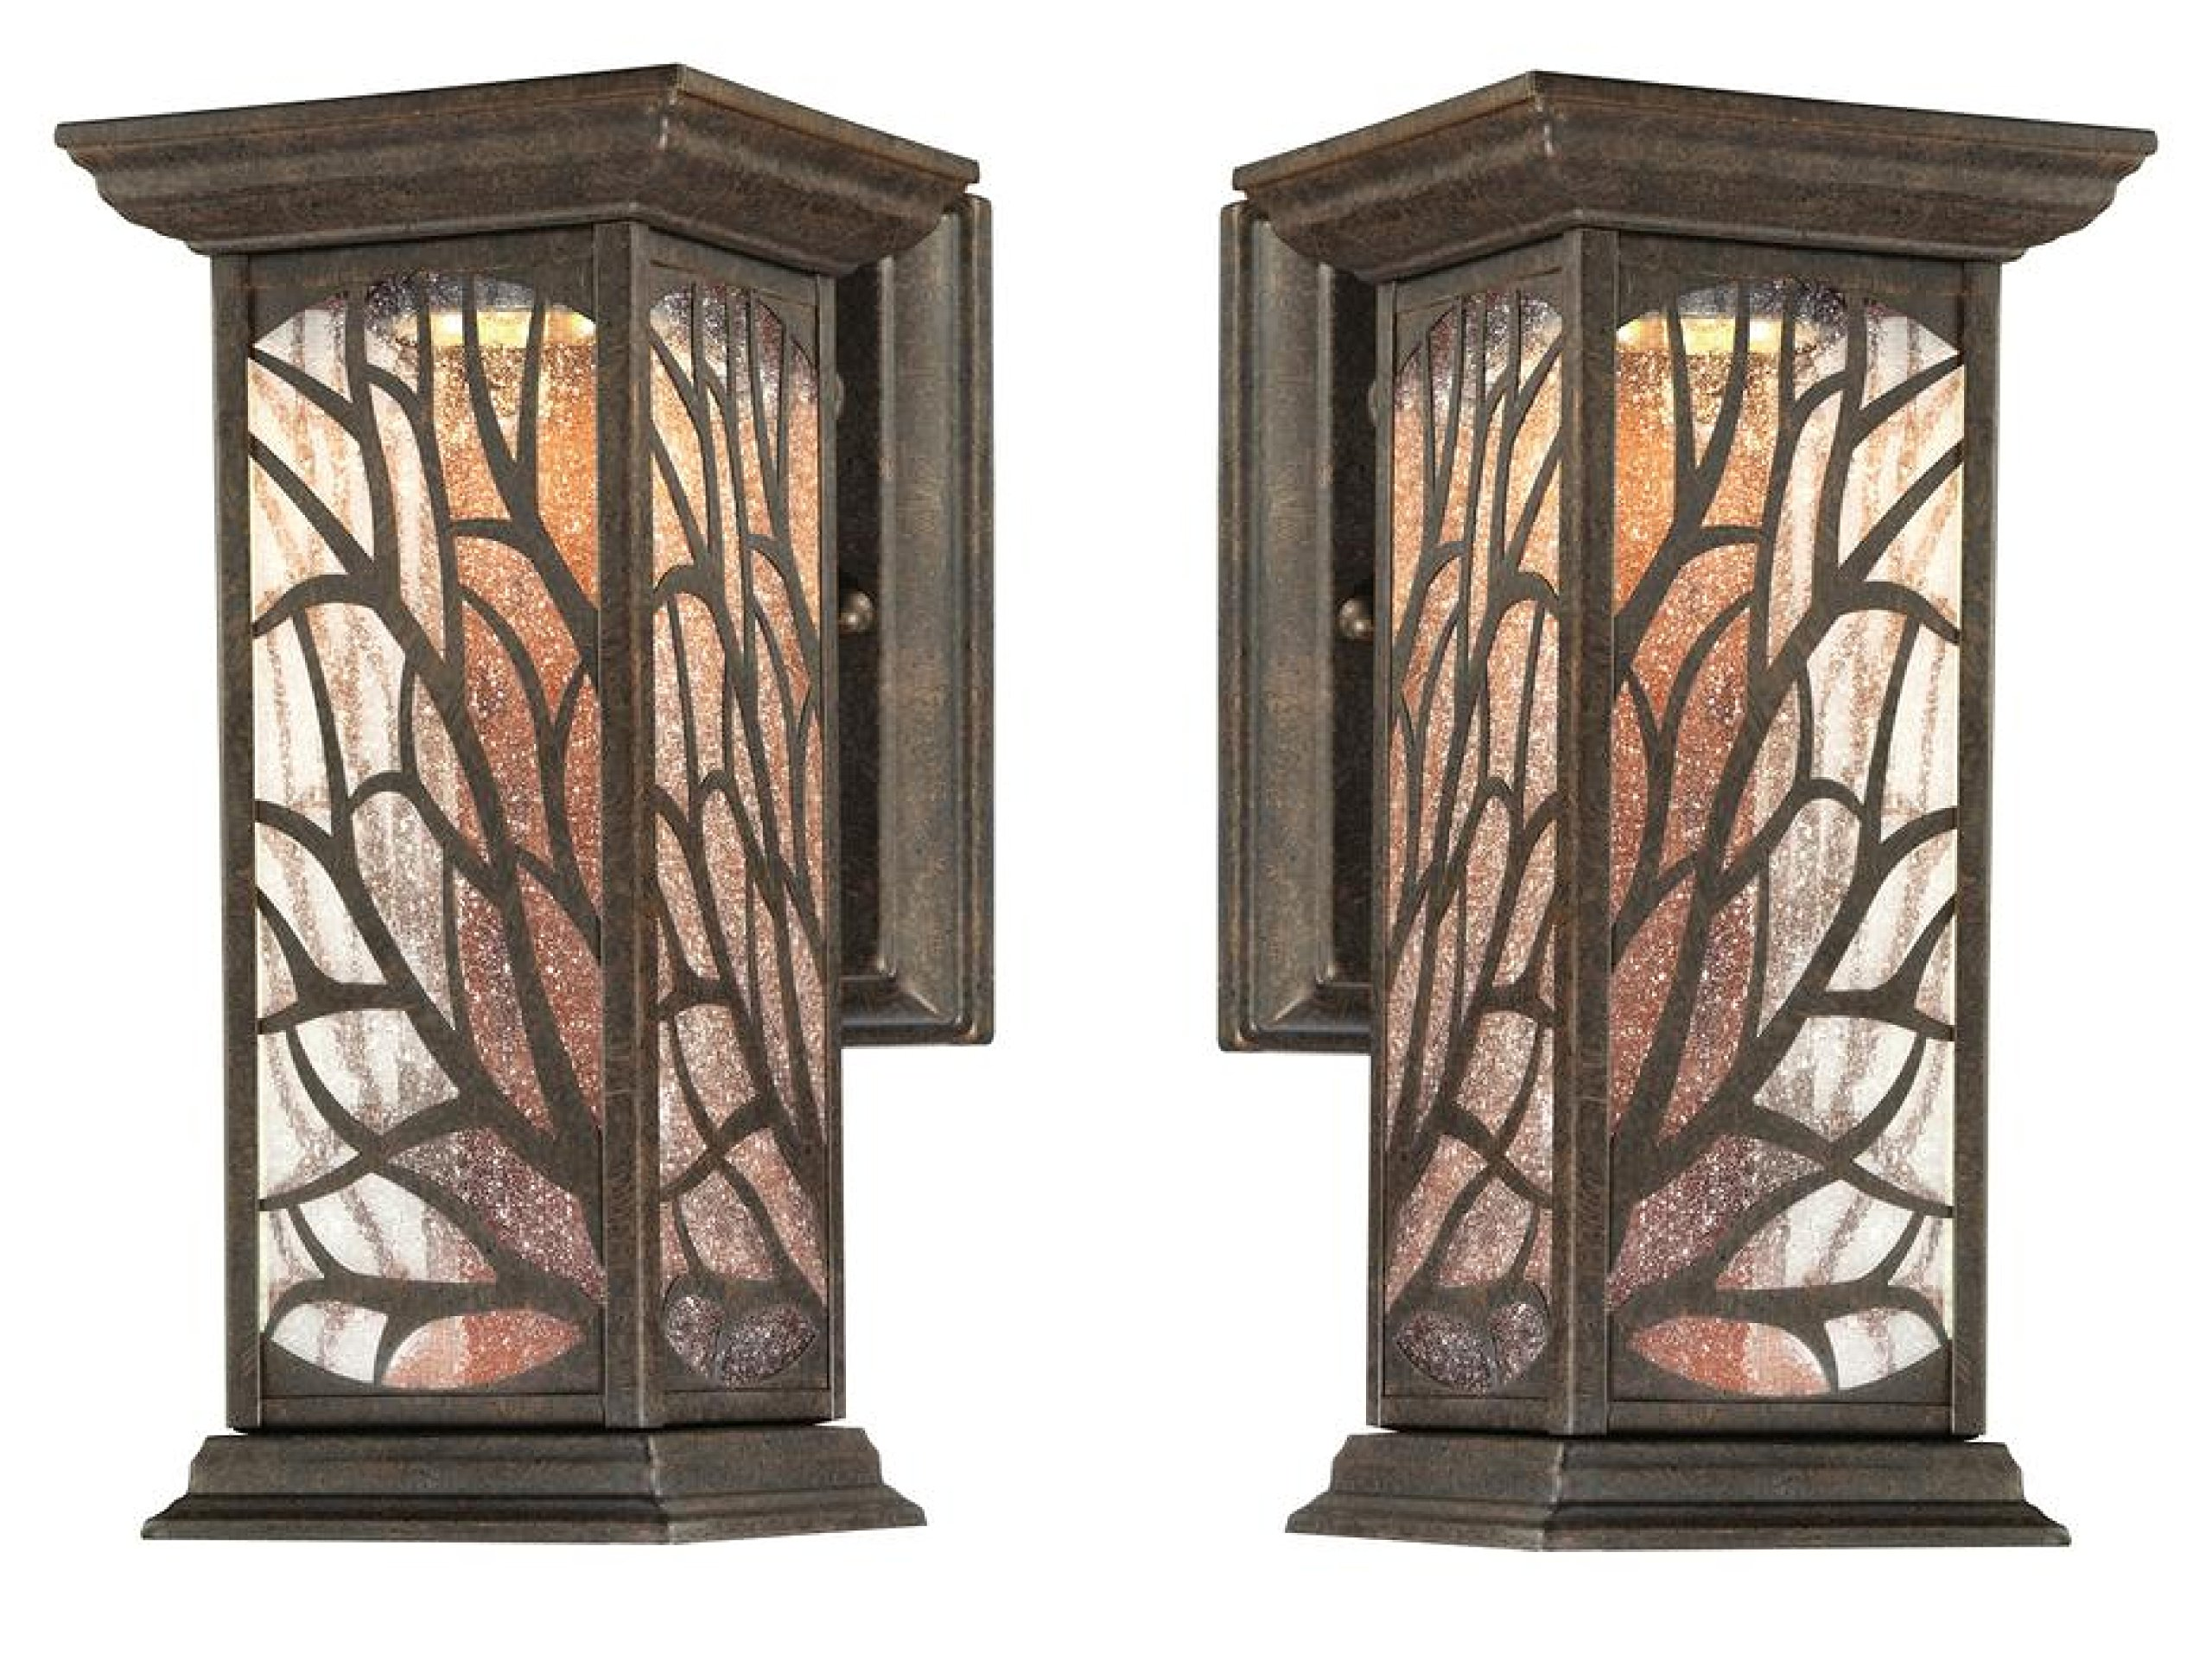 Glenwillow One-Light LED Outdoor Wall Lantern with Clear Seeded Glass, Victorian Bronze Finish (2-Pack)